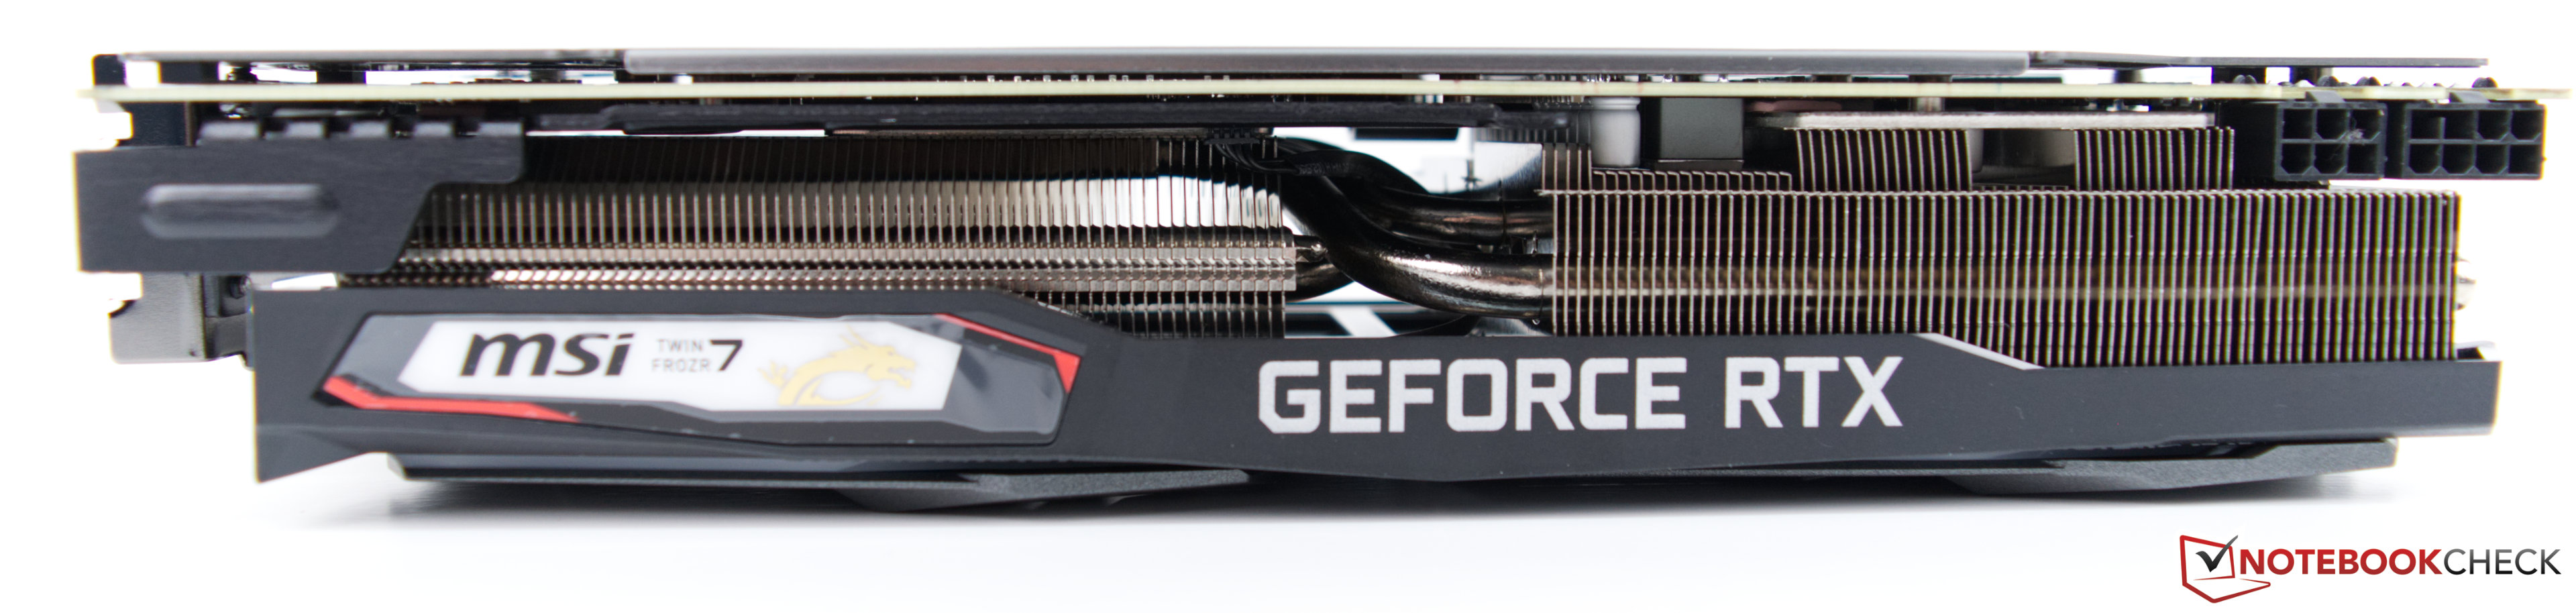 MSI RTX 2070 Gaming Z 8G Desktop GPU review - NotebookCheck